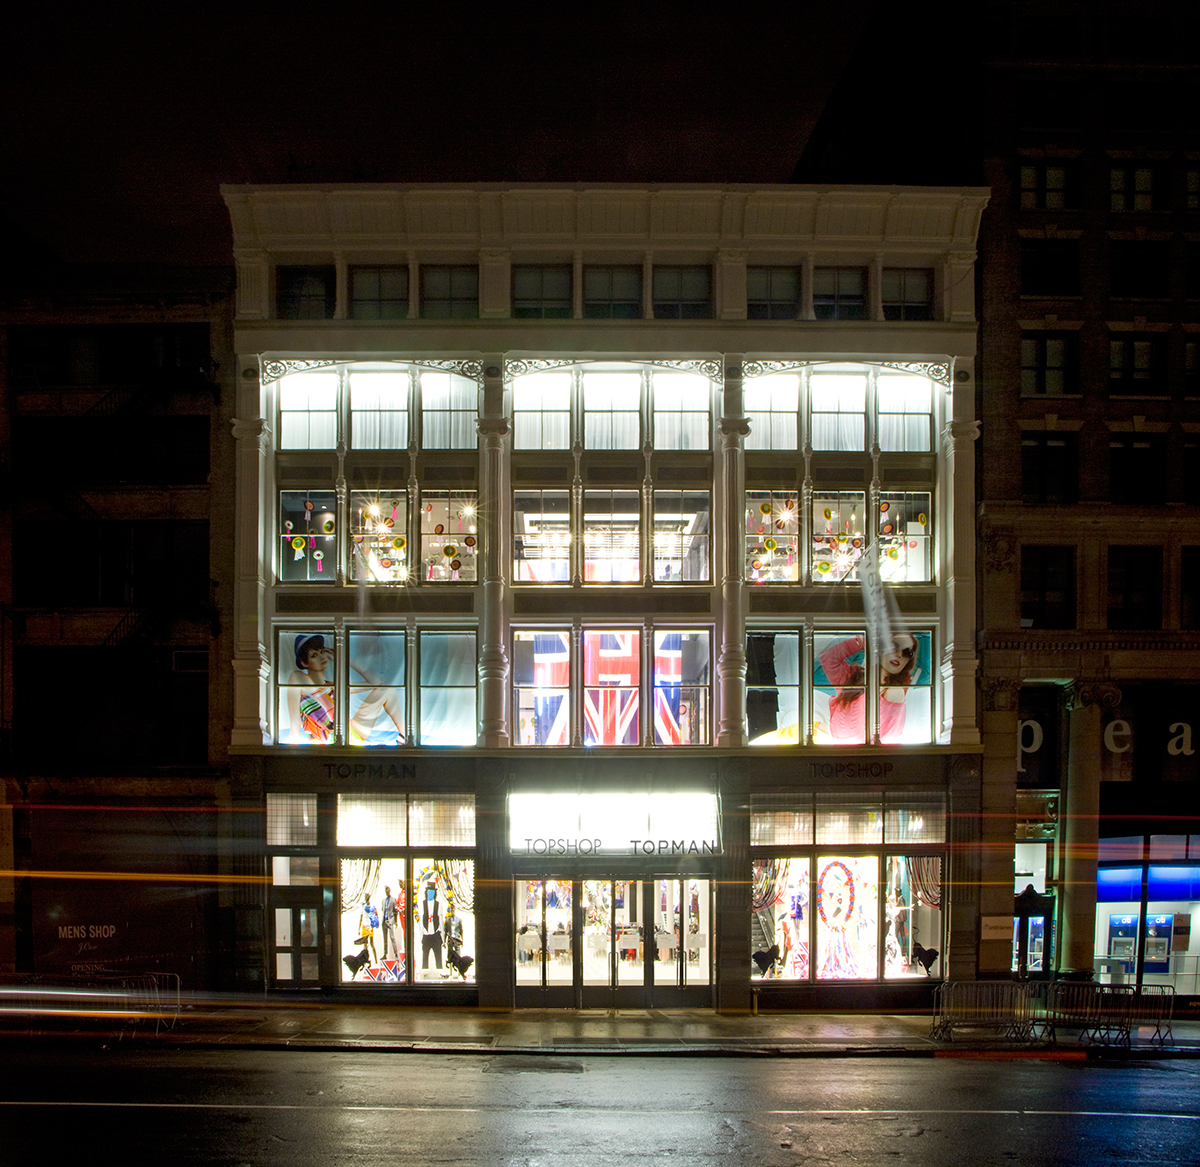 Brightly lit exterior with a prominently displayed Union Jack at the Topshop Topman store in New York. MEP designed by 2L Engineering.